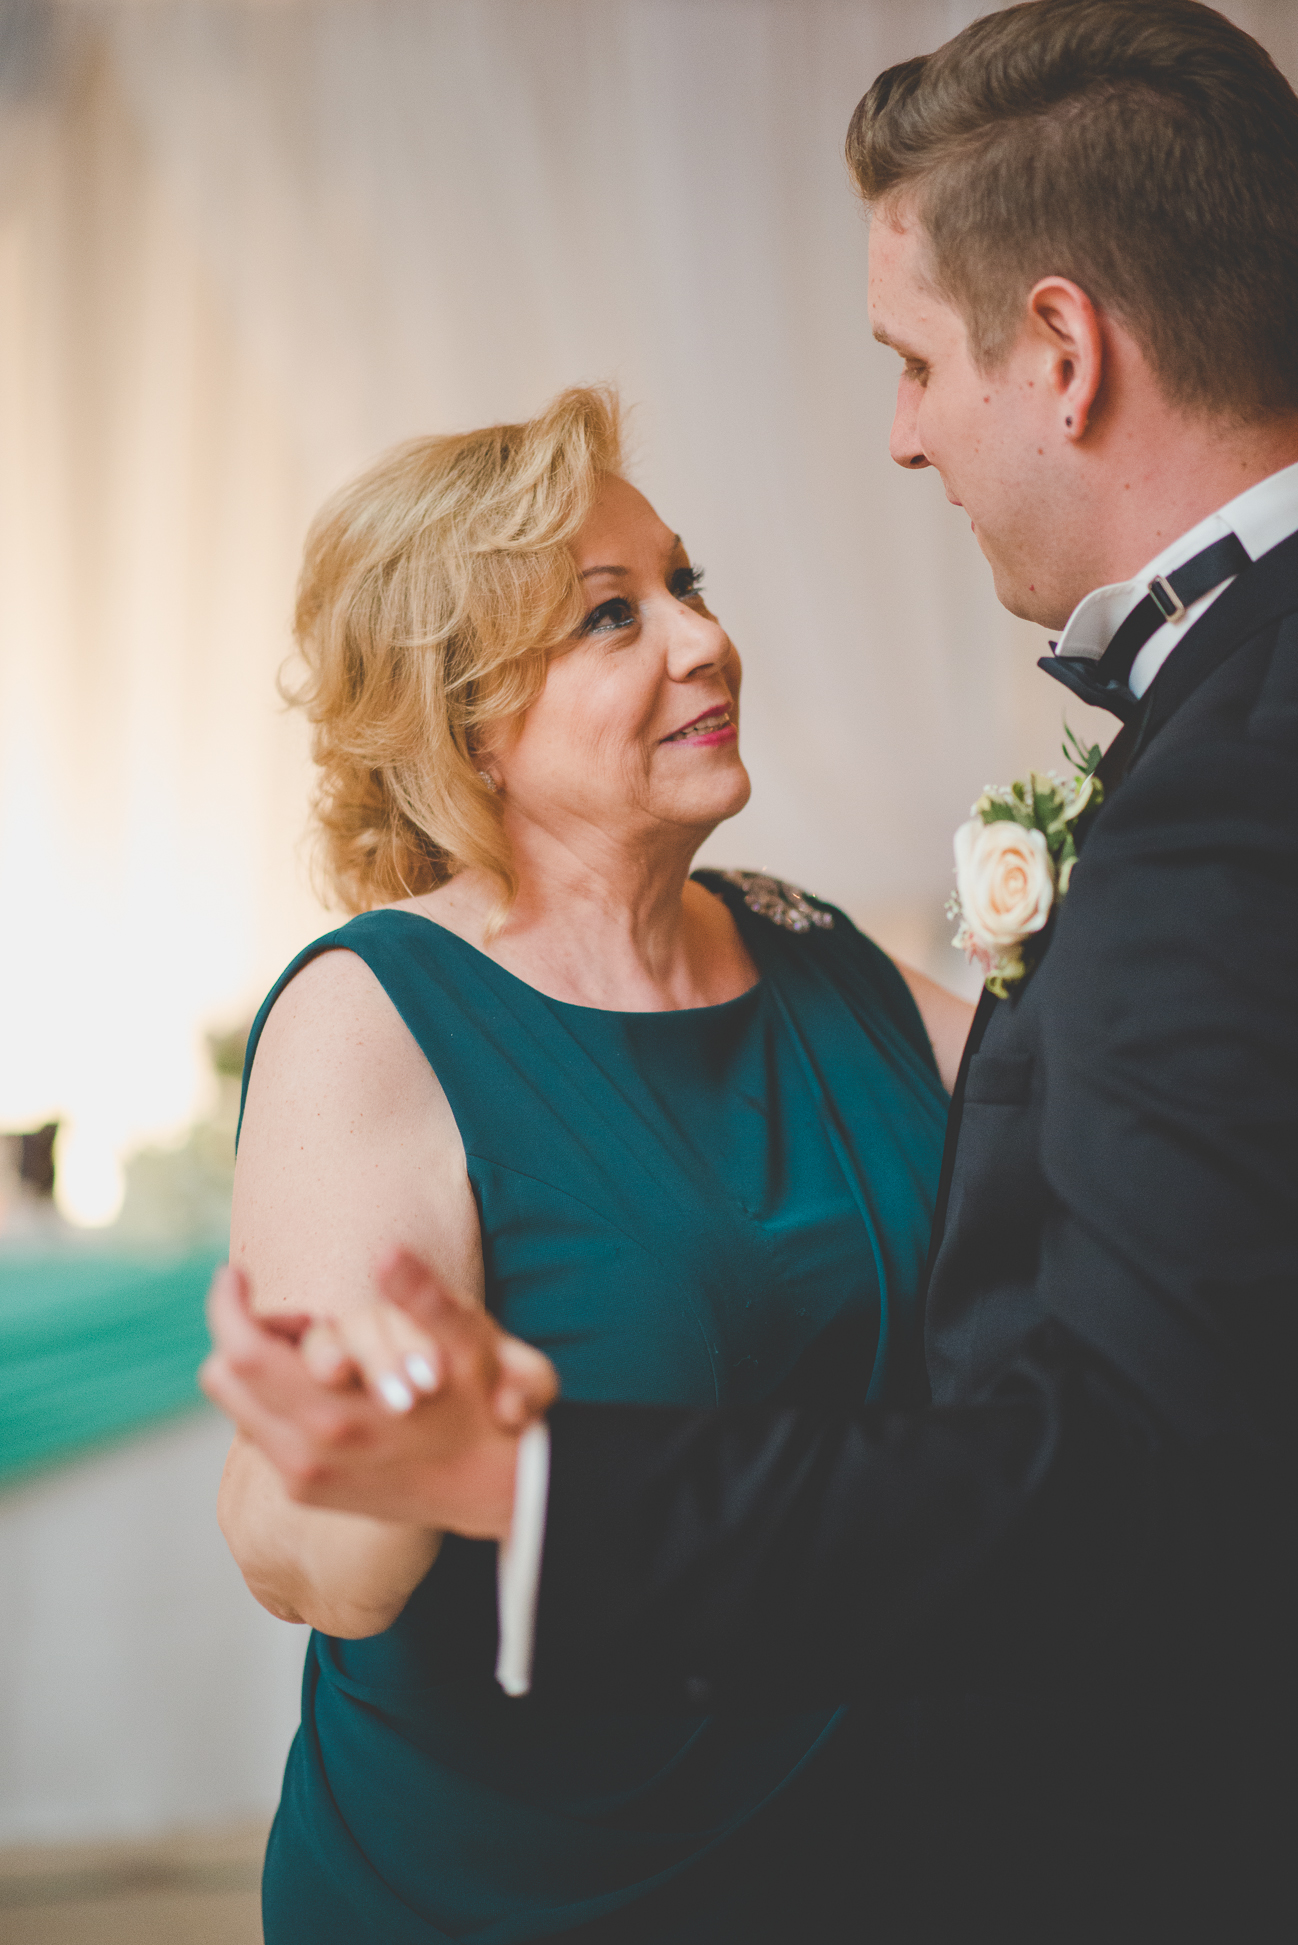 mother of the groom smiles at her son during mother son dance at wedding reception